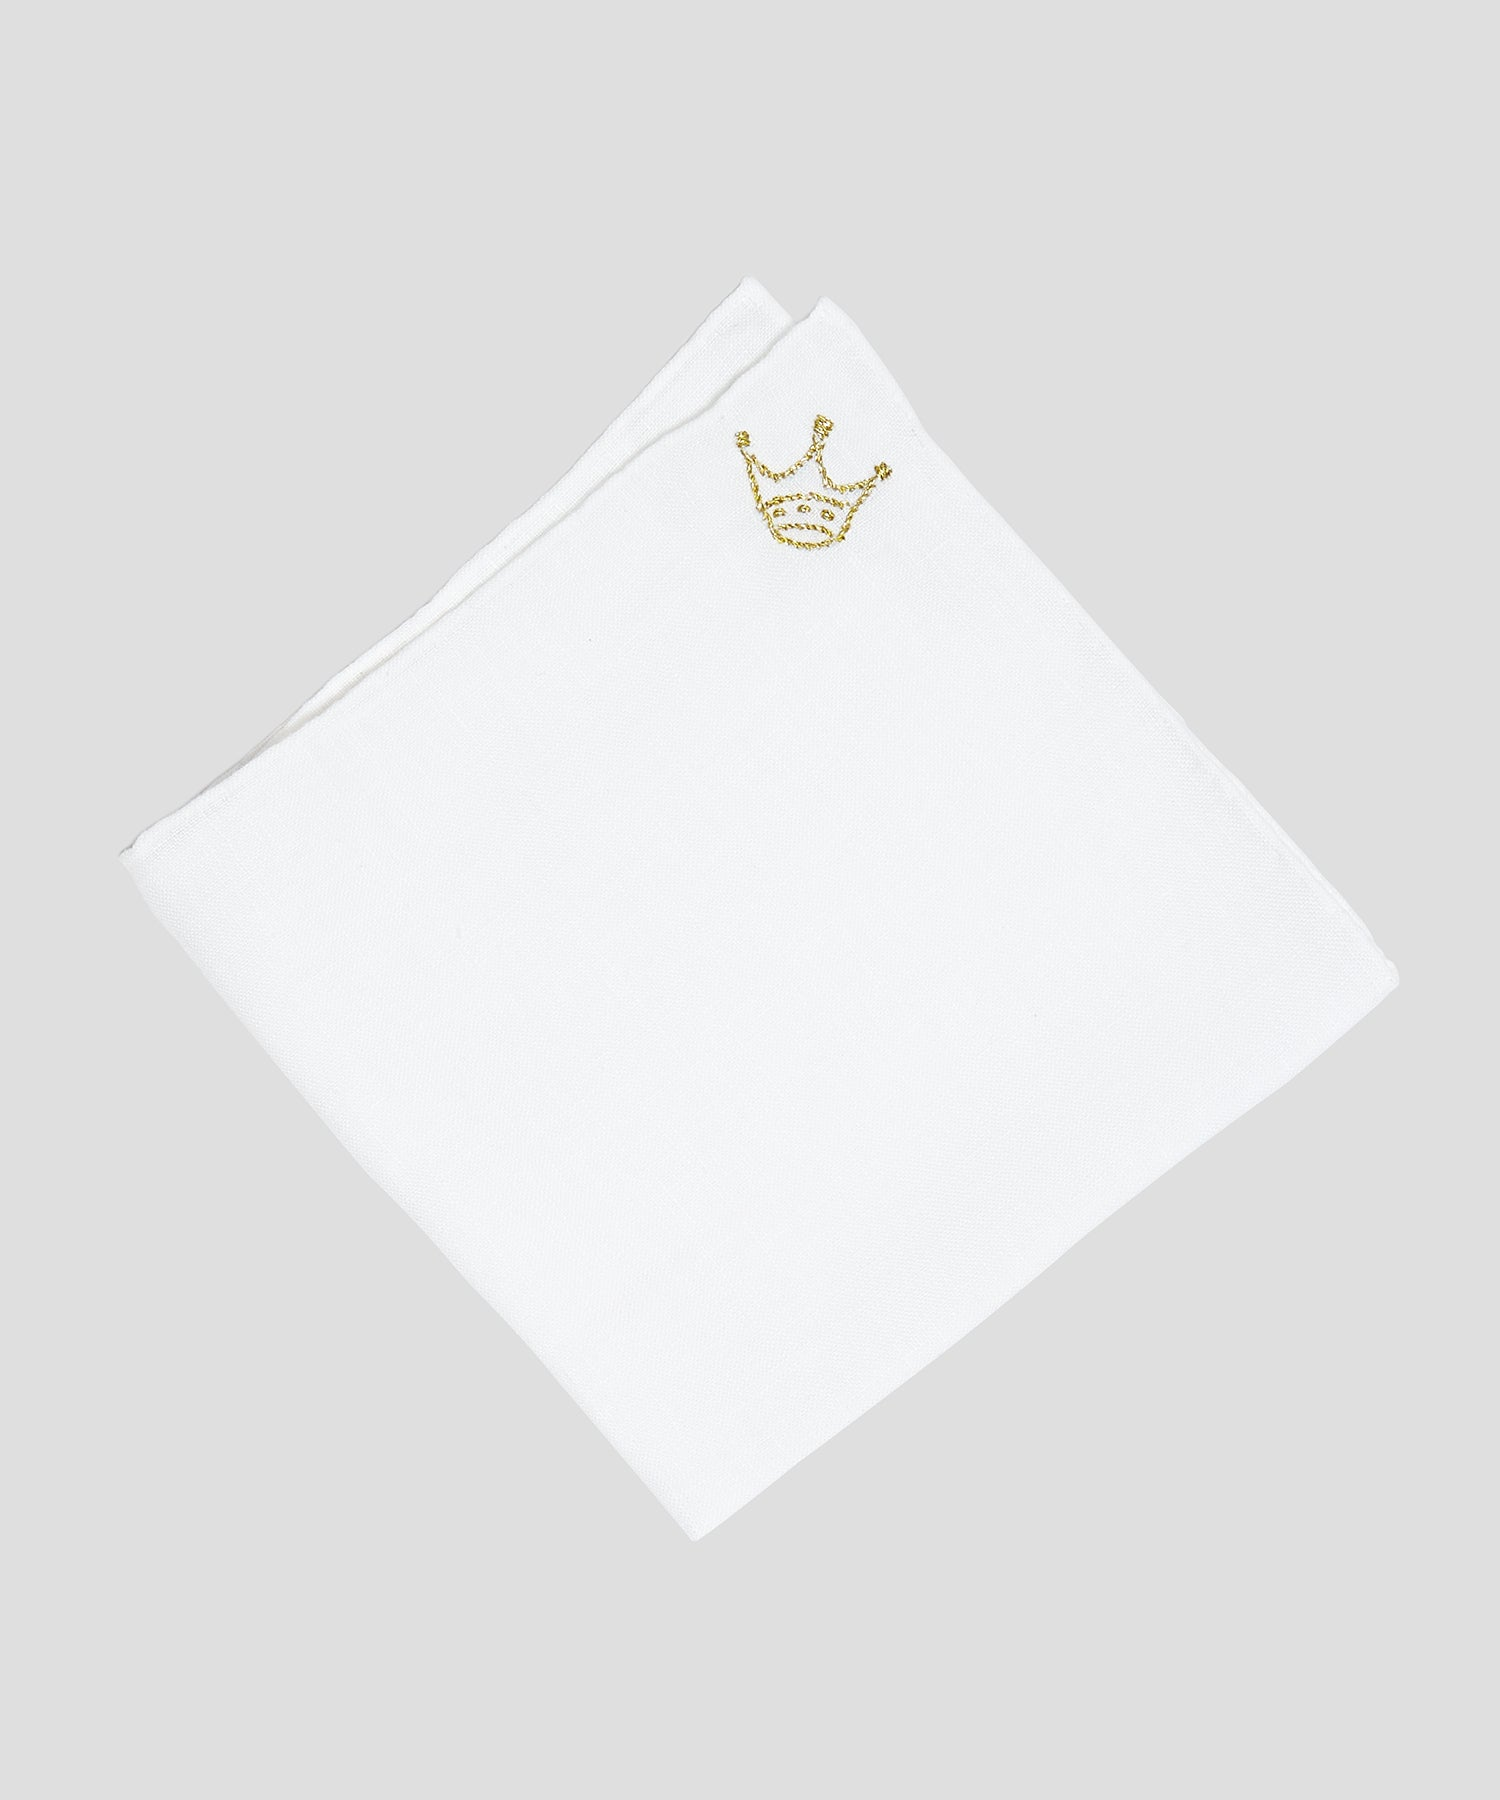 Handmade Italian Linen Pocket Square with Crown Embroidery